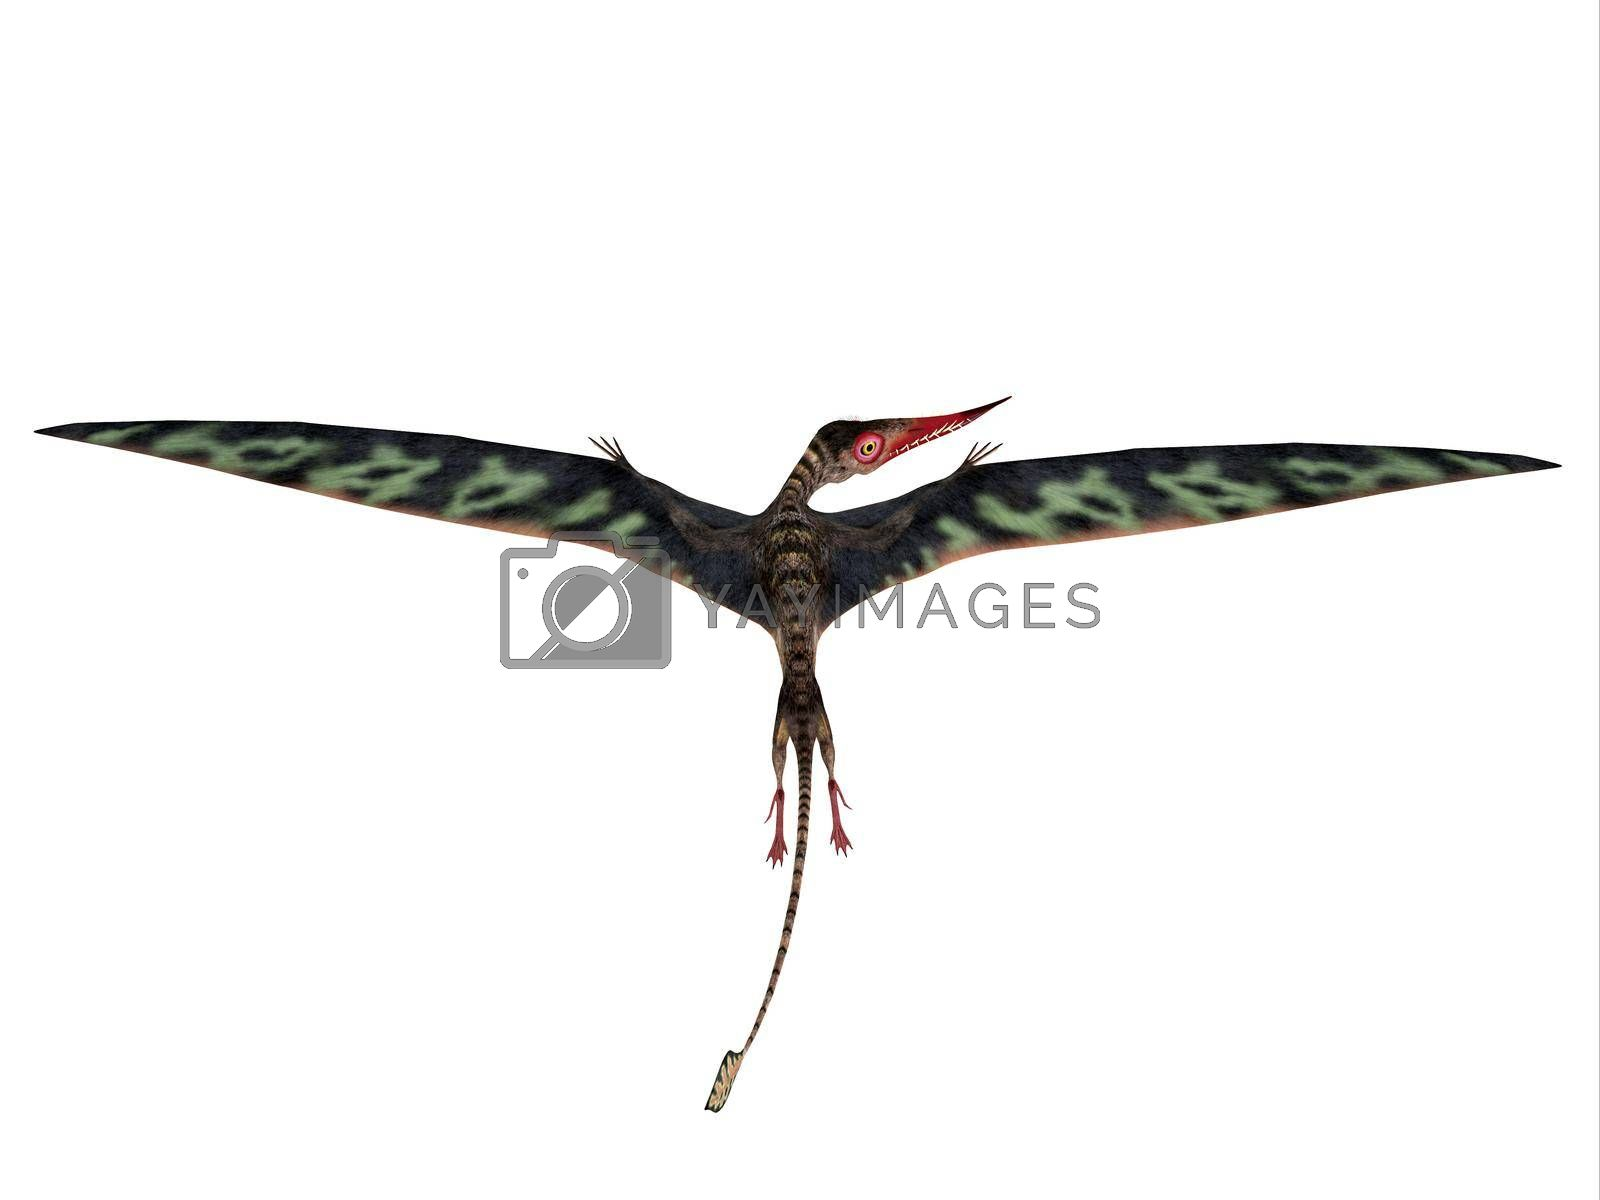 Royalty free image of Rhamphorhynchus Wings Extended by Catmando